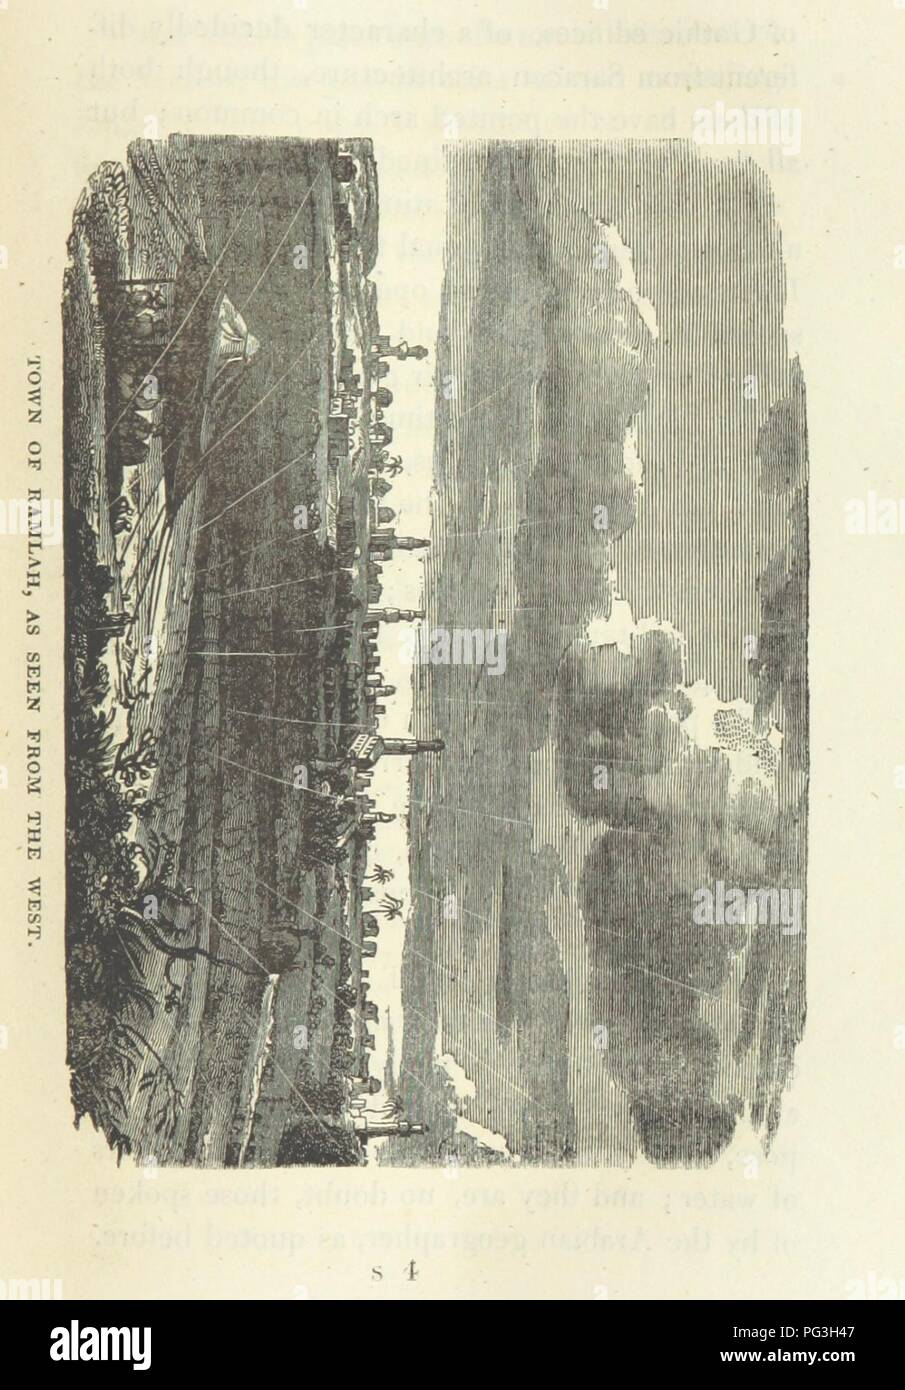 Image  from page 317 of '[Travels in Palestine, through the countries of Bashan and Gilead, east of the River Jordan including a visit to the cities of Geraza and Gamala, in the Decapolis. [With plans and a portrait.]]' by T0009. Stock Photo